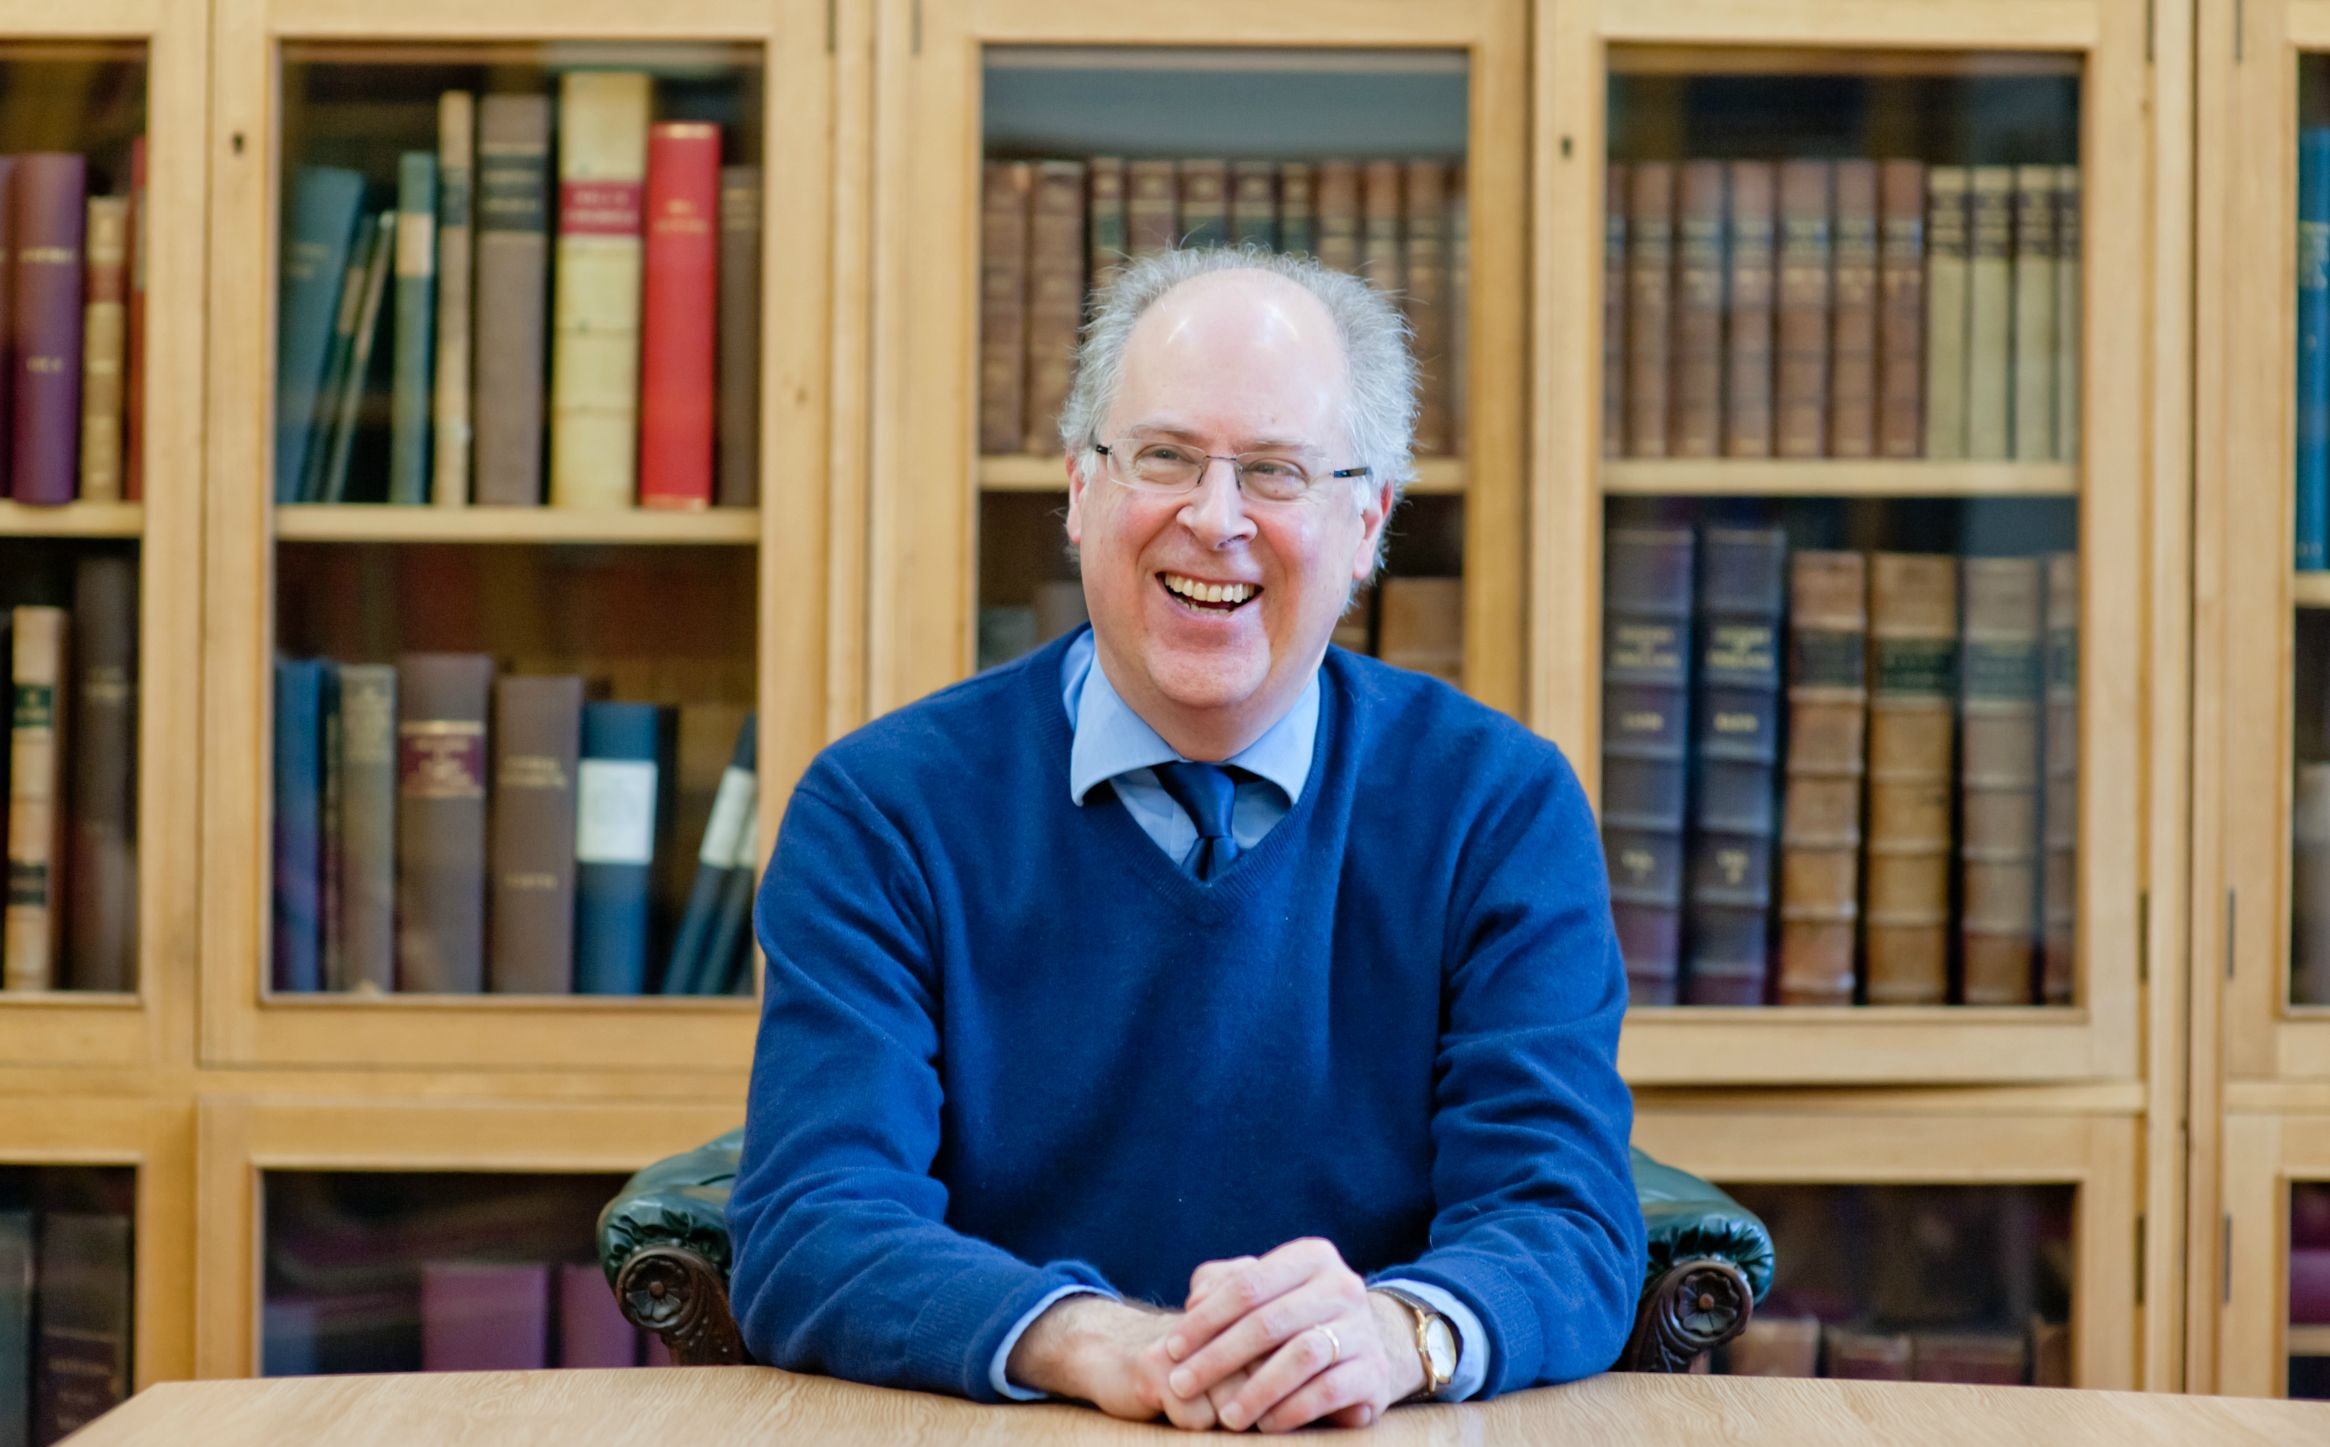 RHS Presidential Address 2016 by Prof. Peter Mandler, 'Educating the Nation IV: Subject Choice'